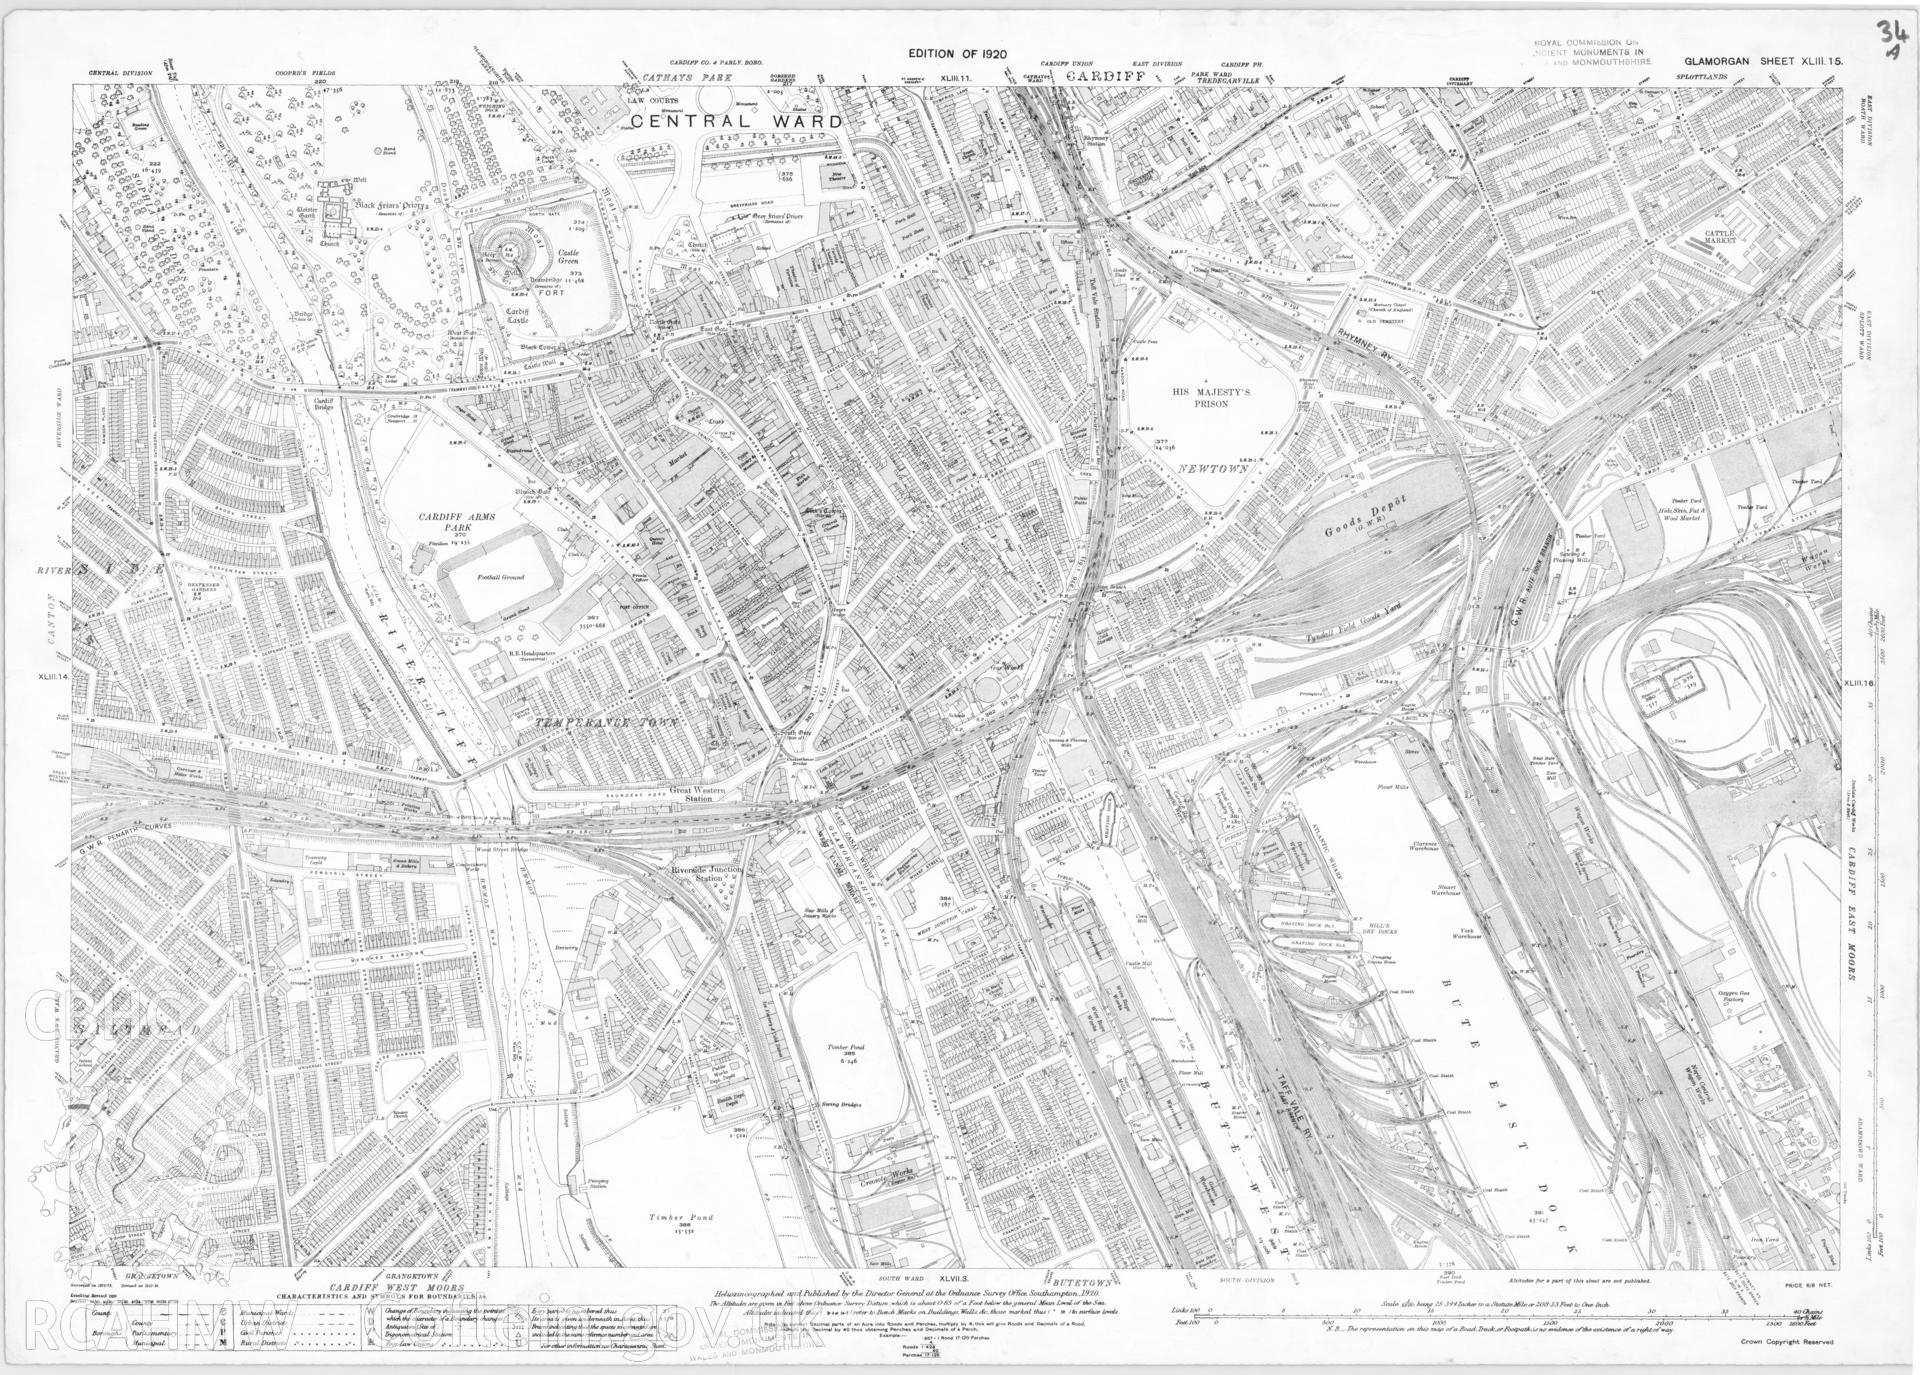 Digitized copy of Ordnance Survey 25 inch first edition map of Cardiff 1920.